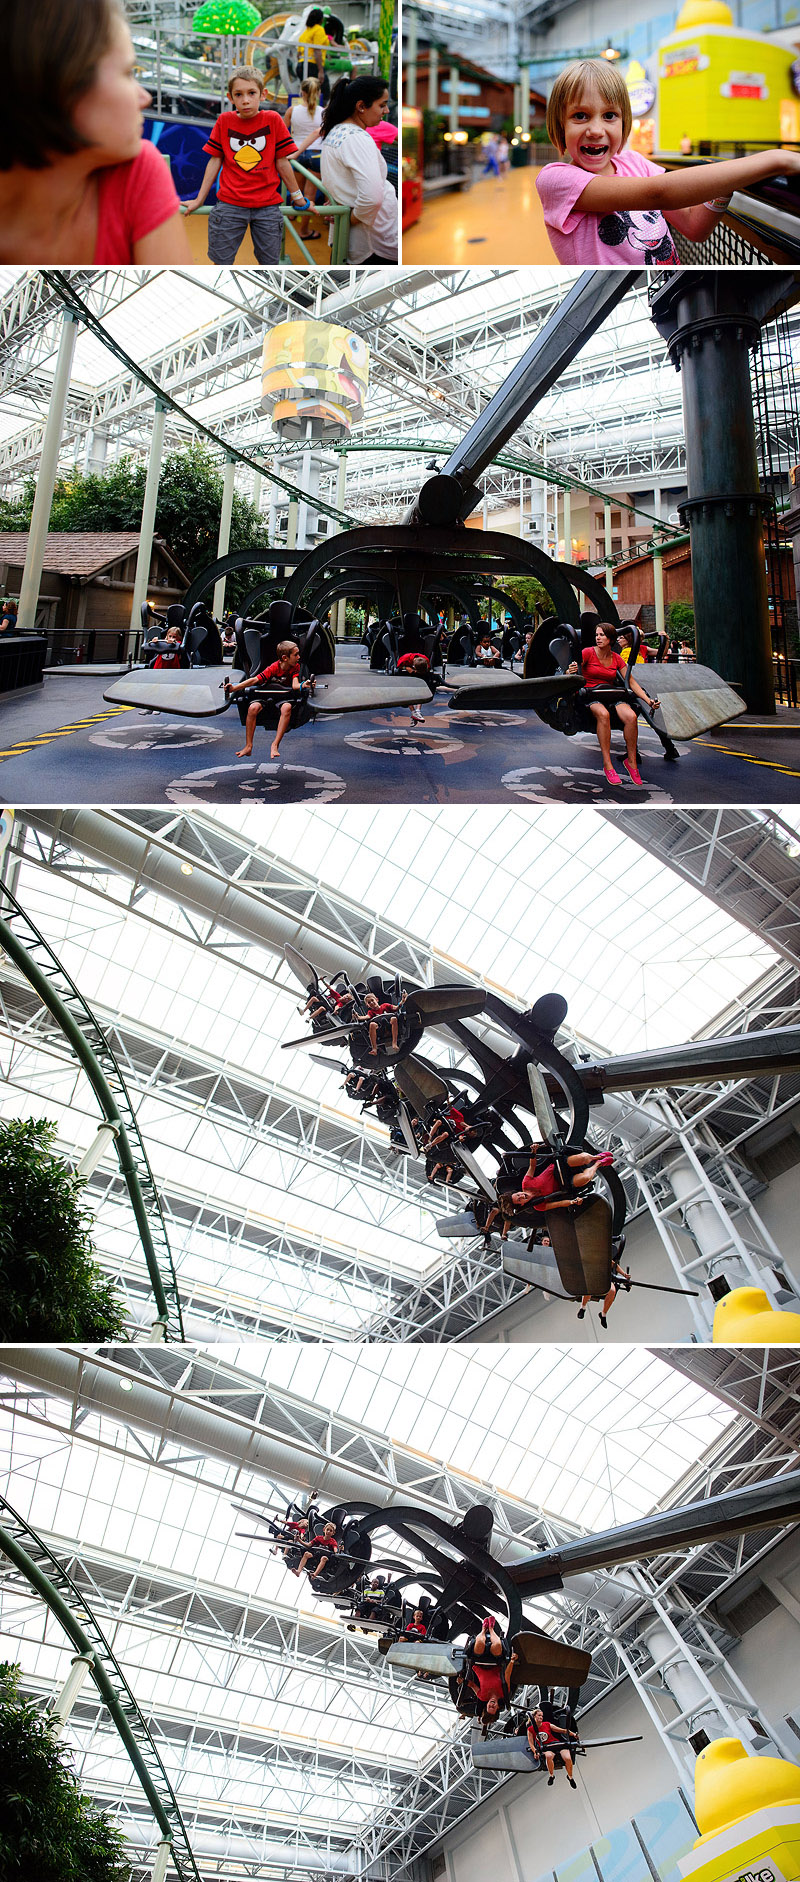 kids riding rides at amusement park in mall of america